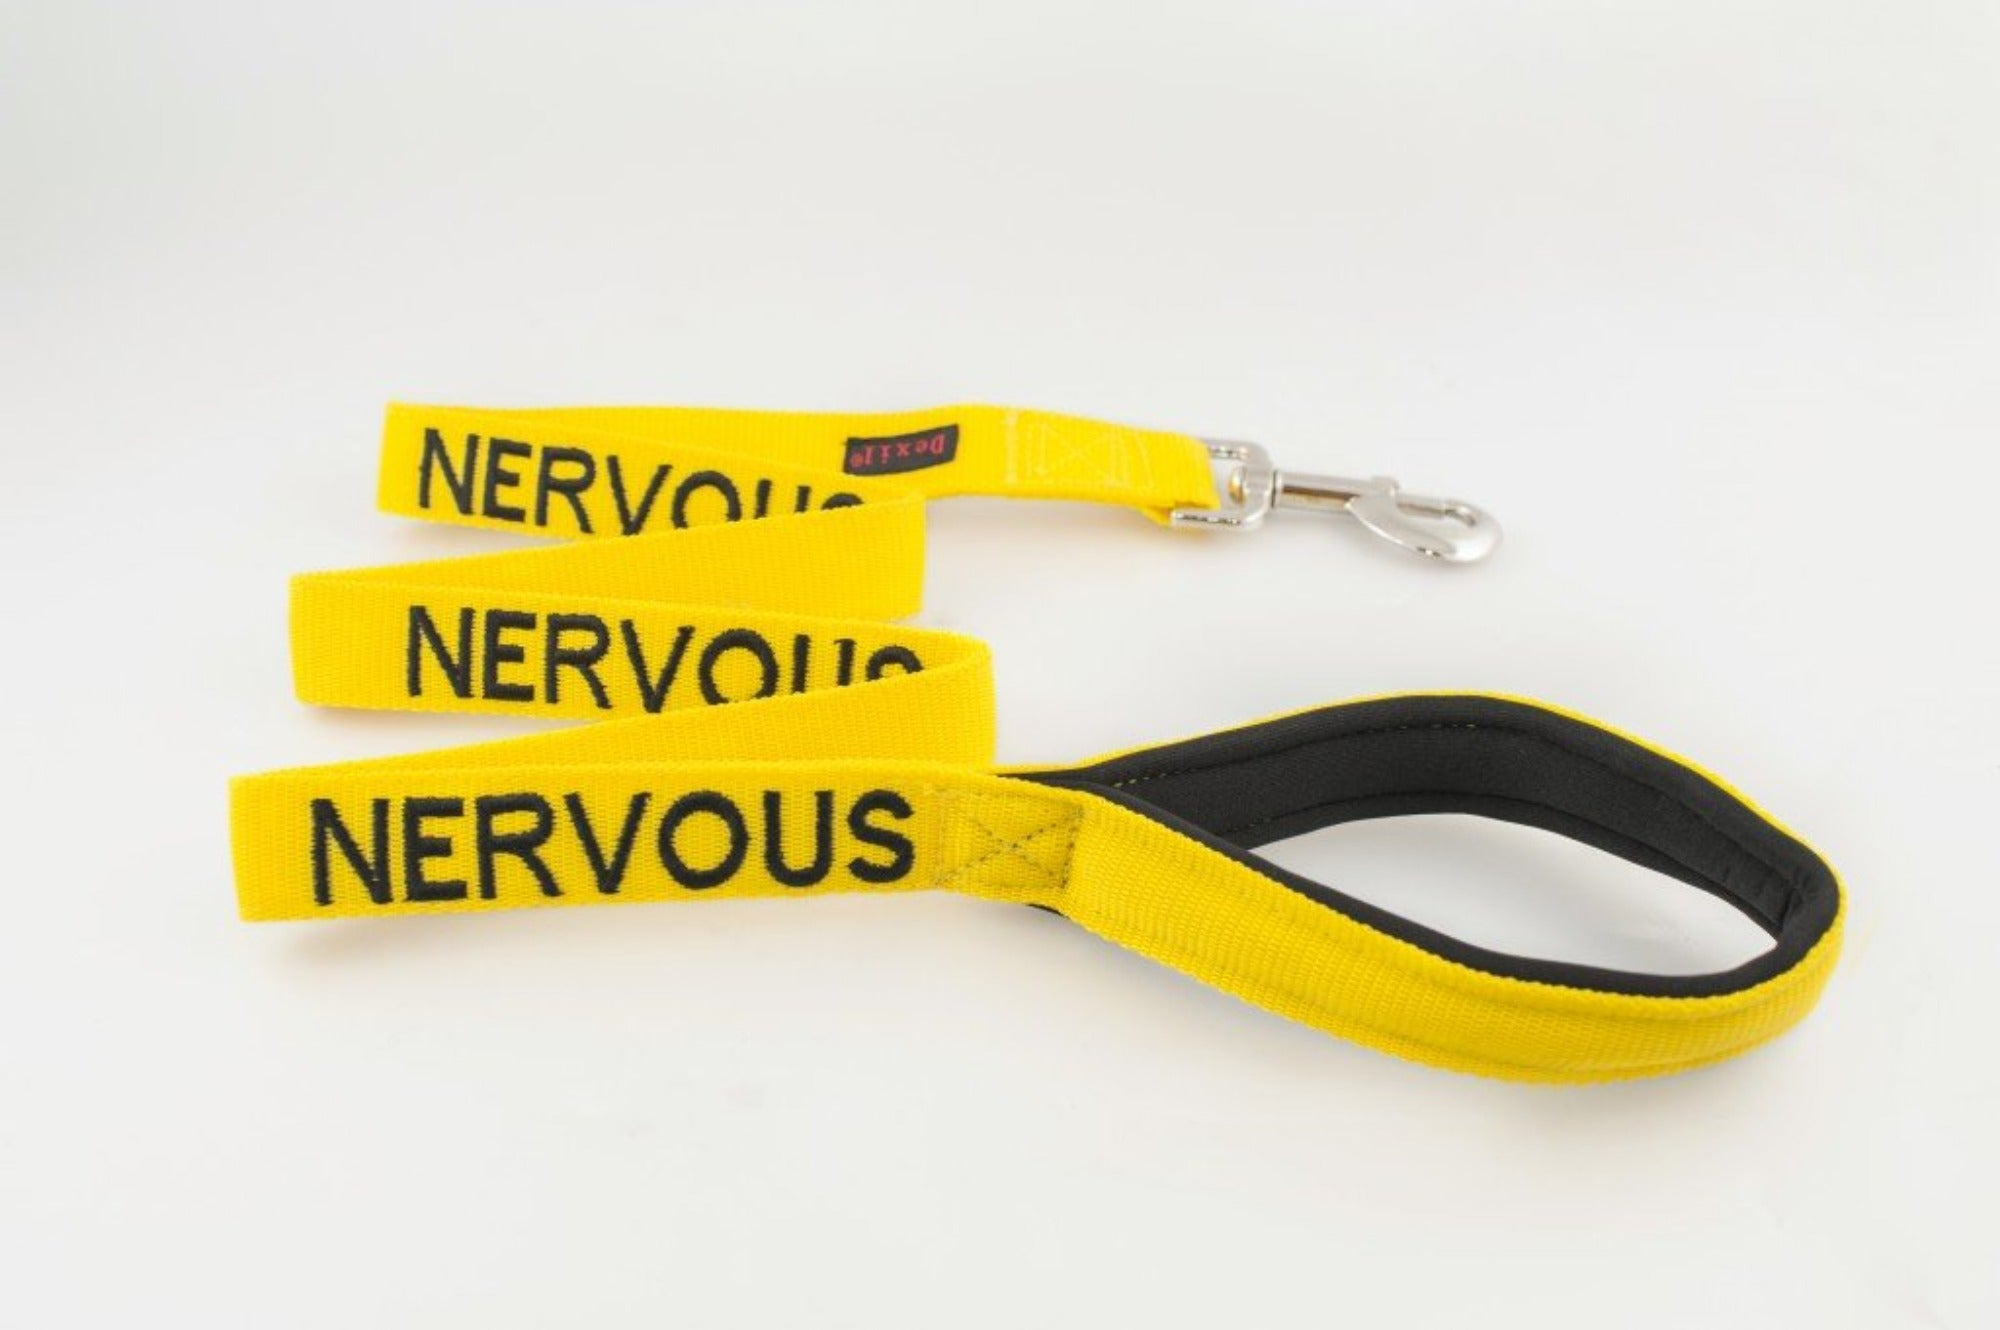 Nervous - Advisory Dog Lead